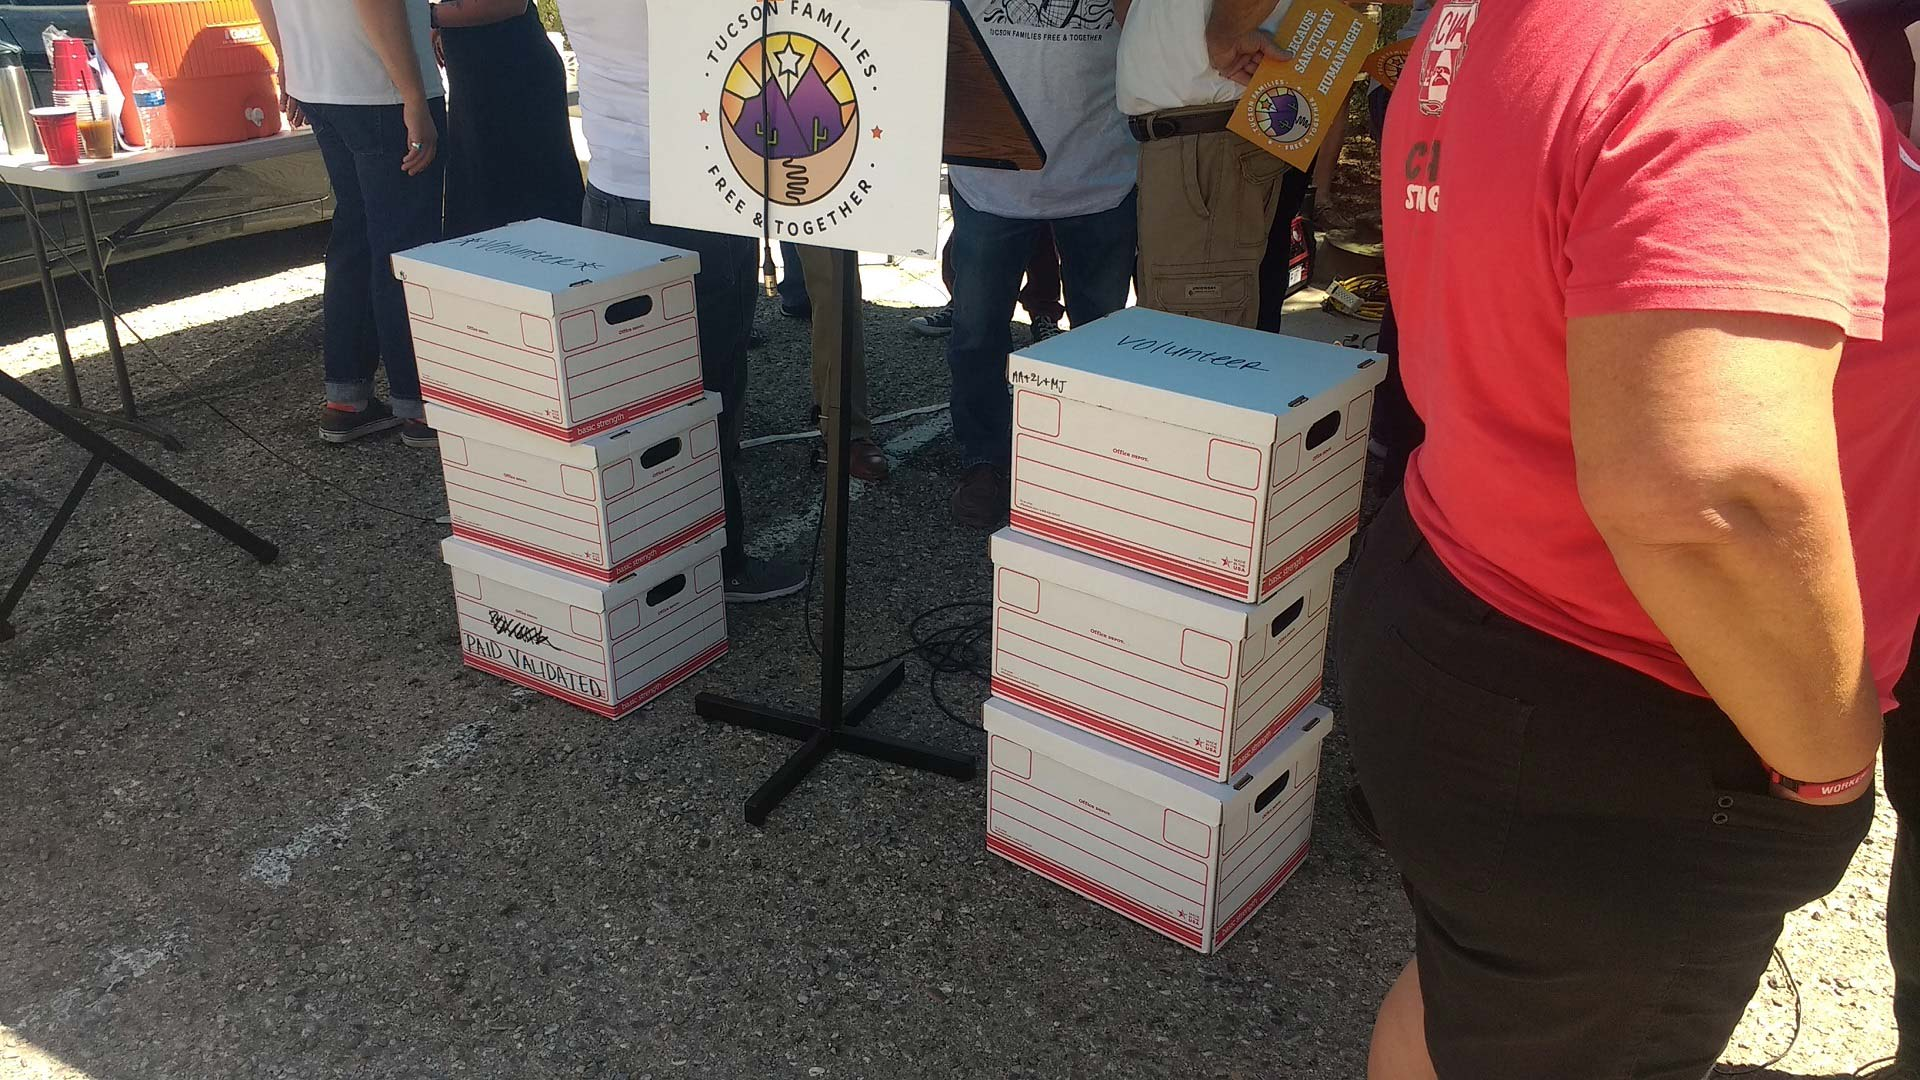 Boxes containing petitions collected by the People's Defense Initiative were displayed on July 3, 2019, before the group submitted them to Tucson city officials.